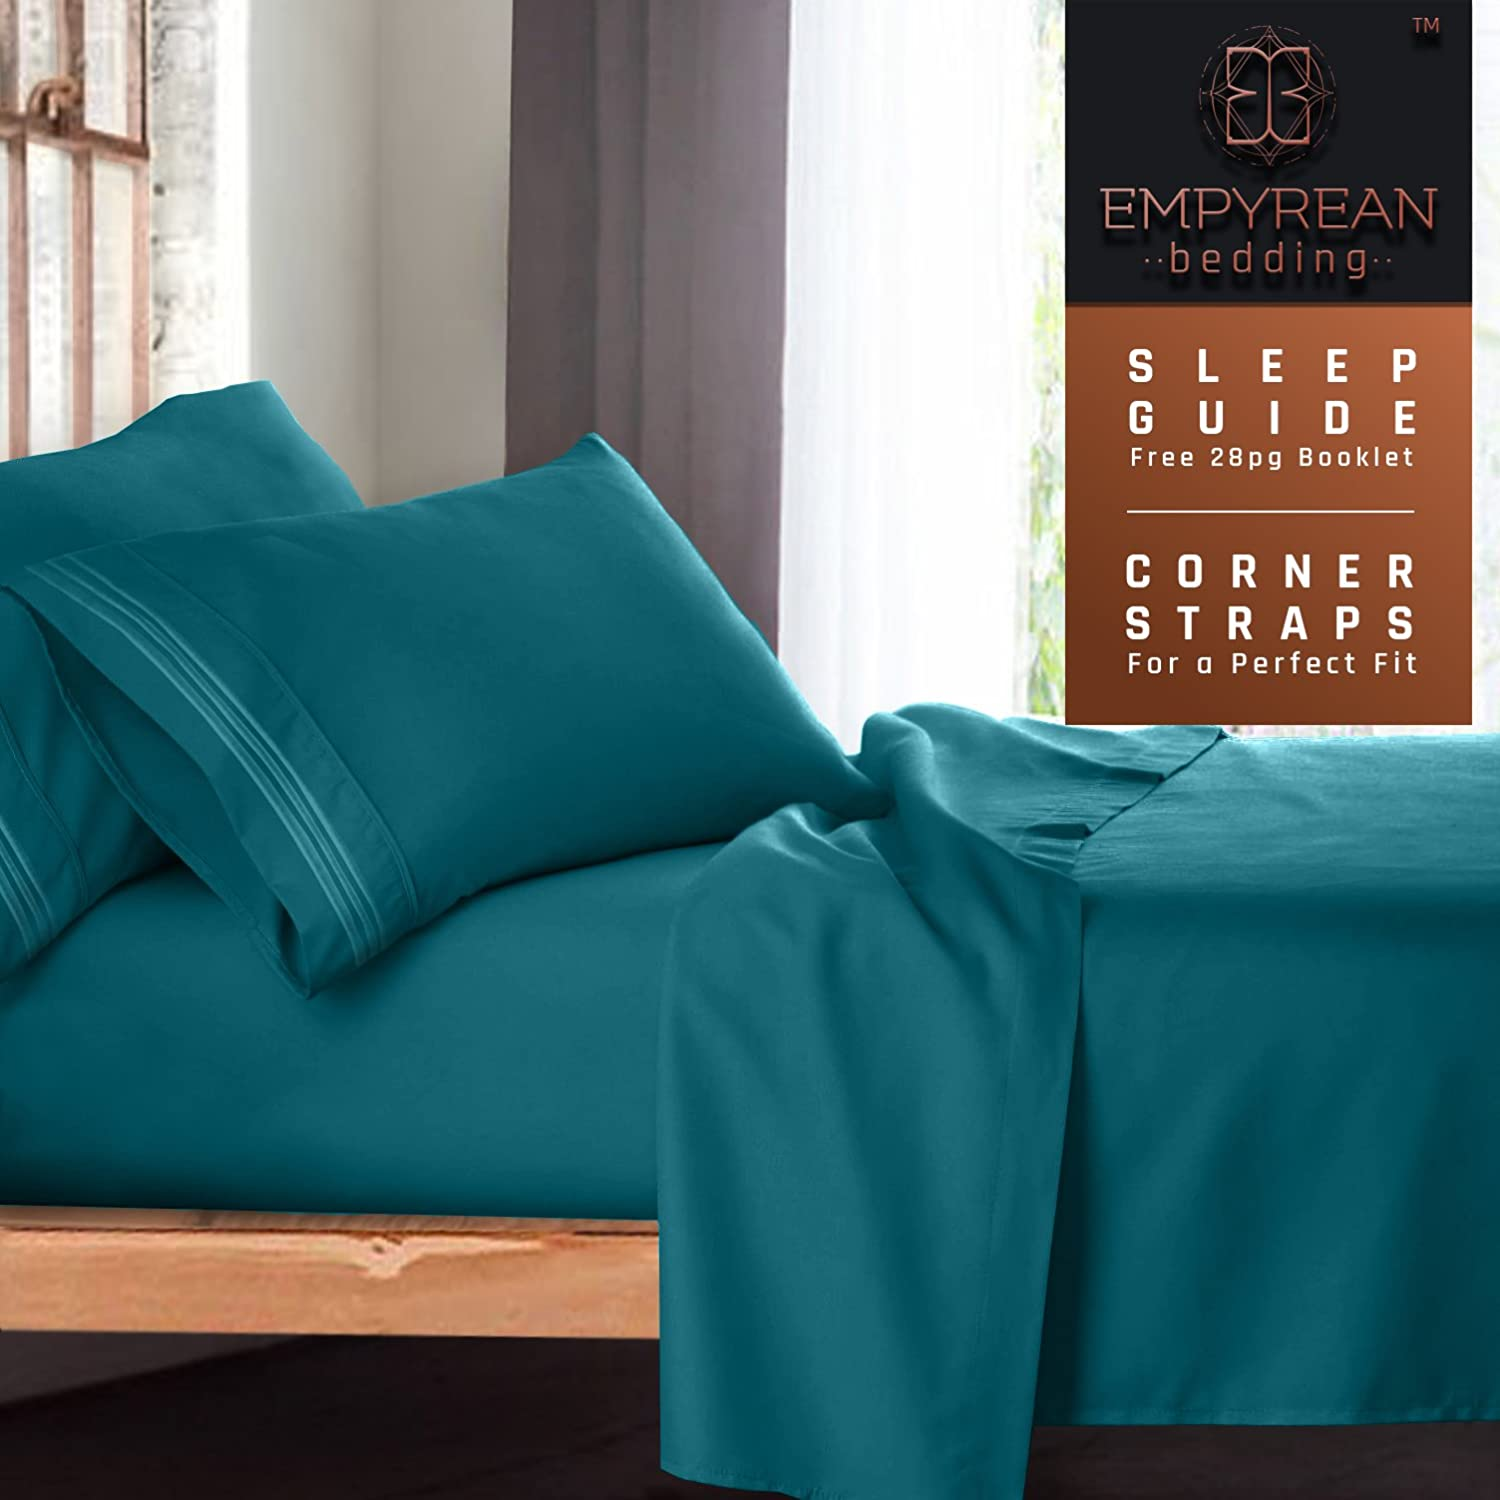 Amazon.com: Premium King Size Sheets Set   Teal Turquoise Hotel Luxury  4 Piece Bed Set, Extra Deep Pocket Special Super Fit Fitted Sheet, Best  Quality ...